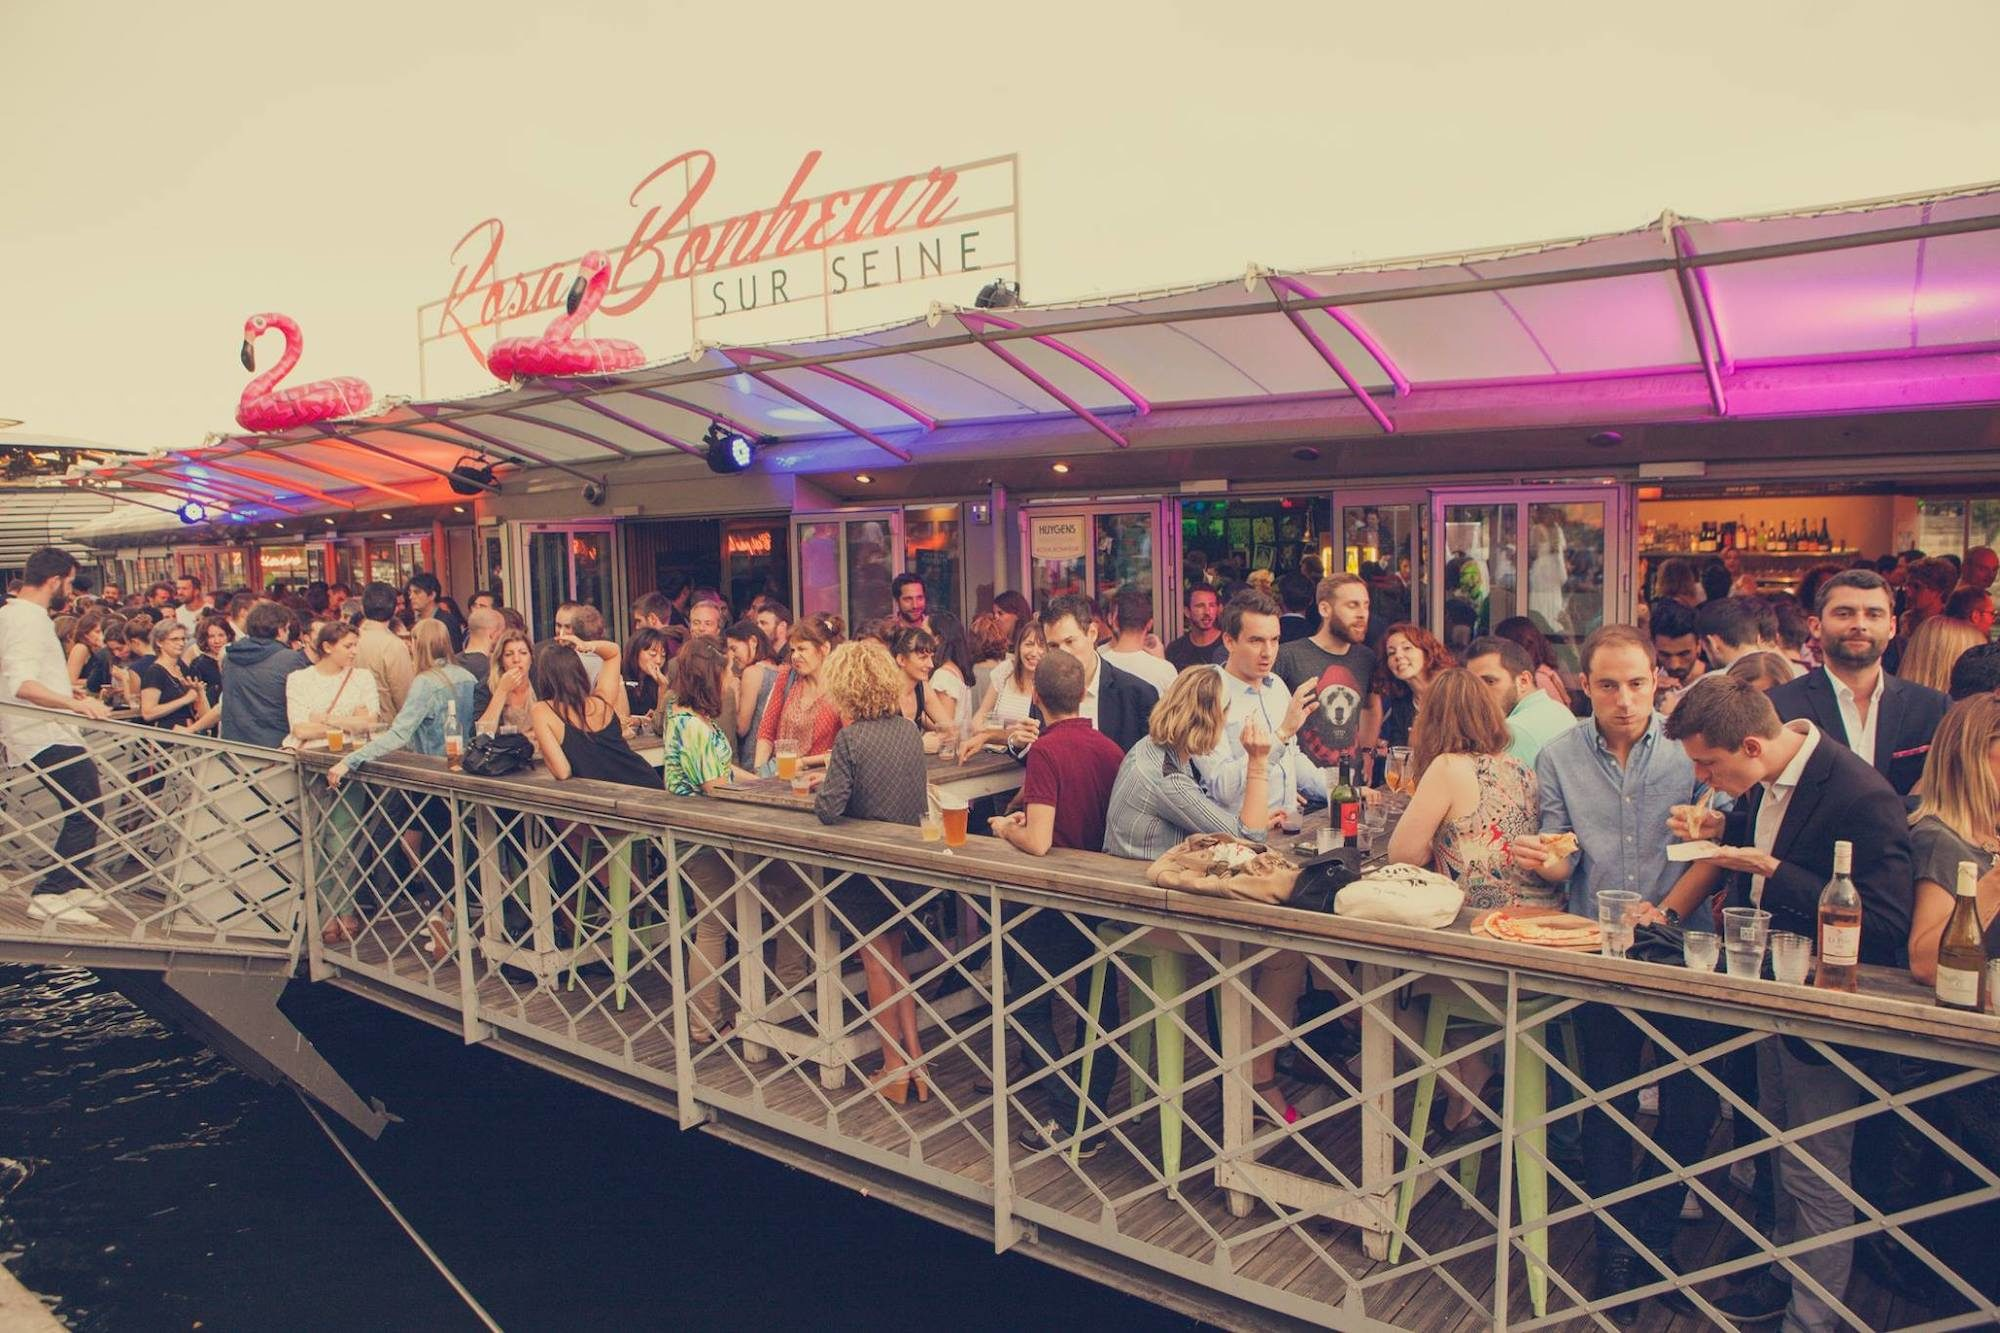 The Rosa Bonheur boat is a bar on the River Seine in Paris, which is usually heaving with locals who come for the cocktails and the atmosphere.